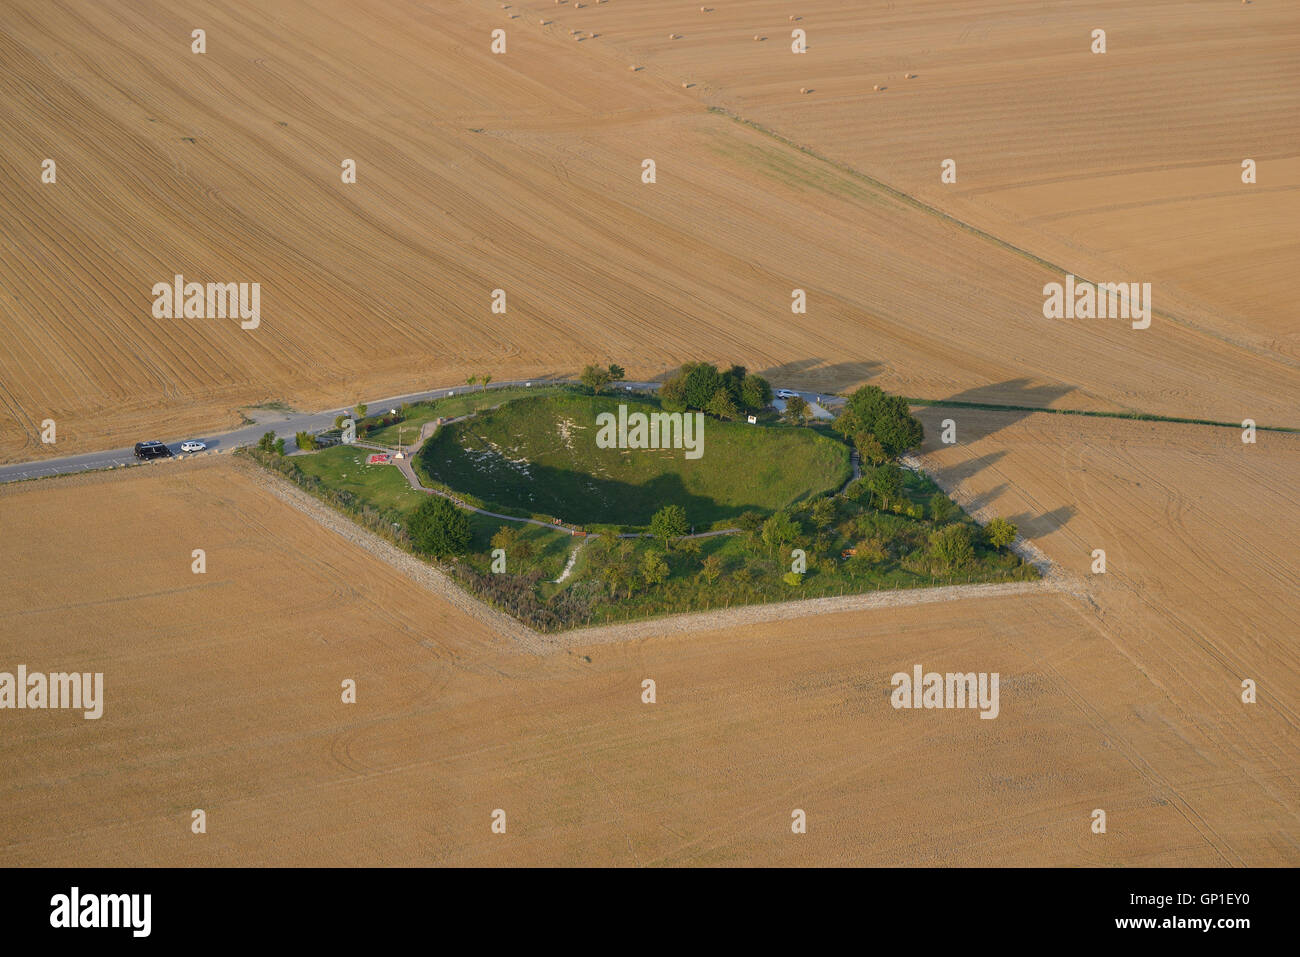 MINE CRATER FROM THE FIRST WORLD WAR (aerial view). Lochnagar Crater, Somme, Picardy, France. - Stock Image